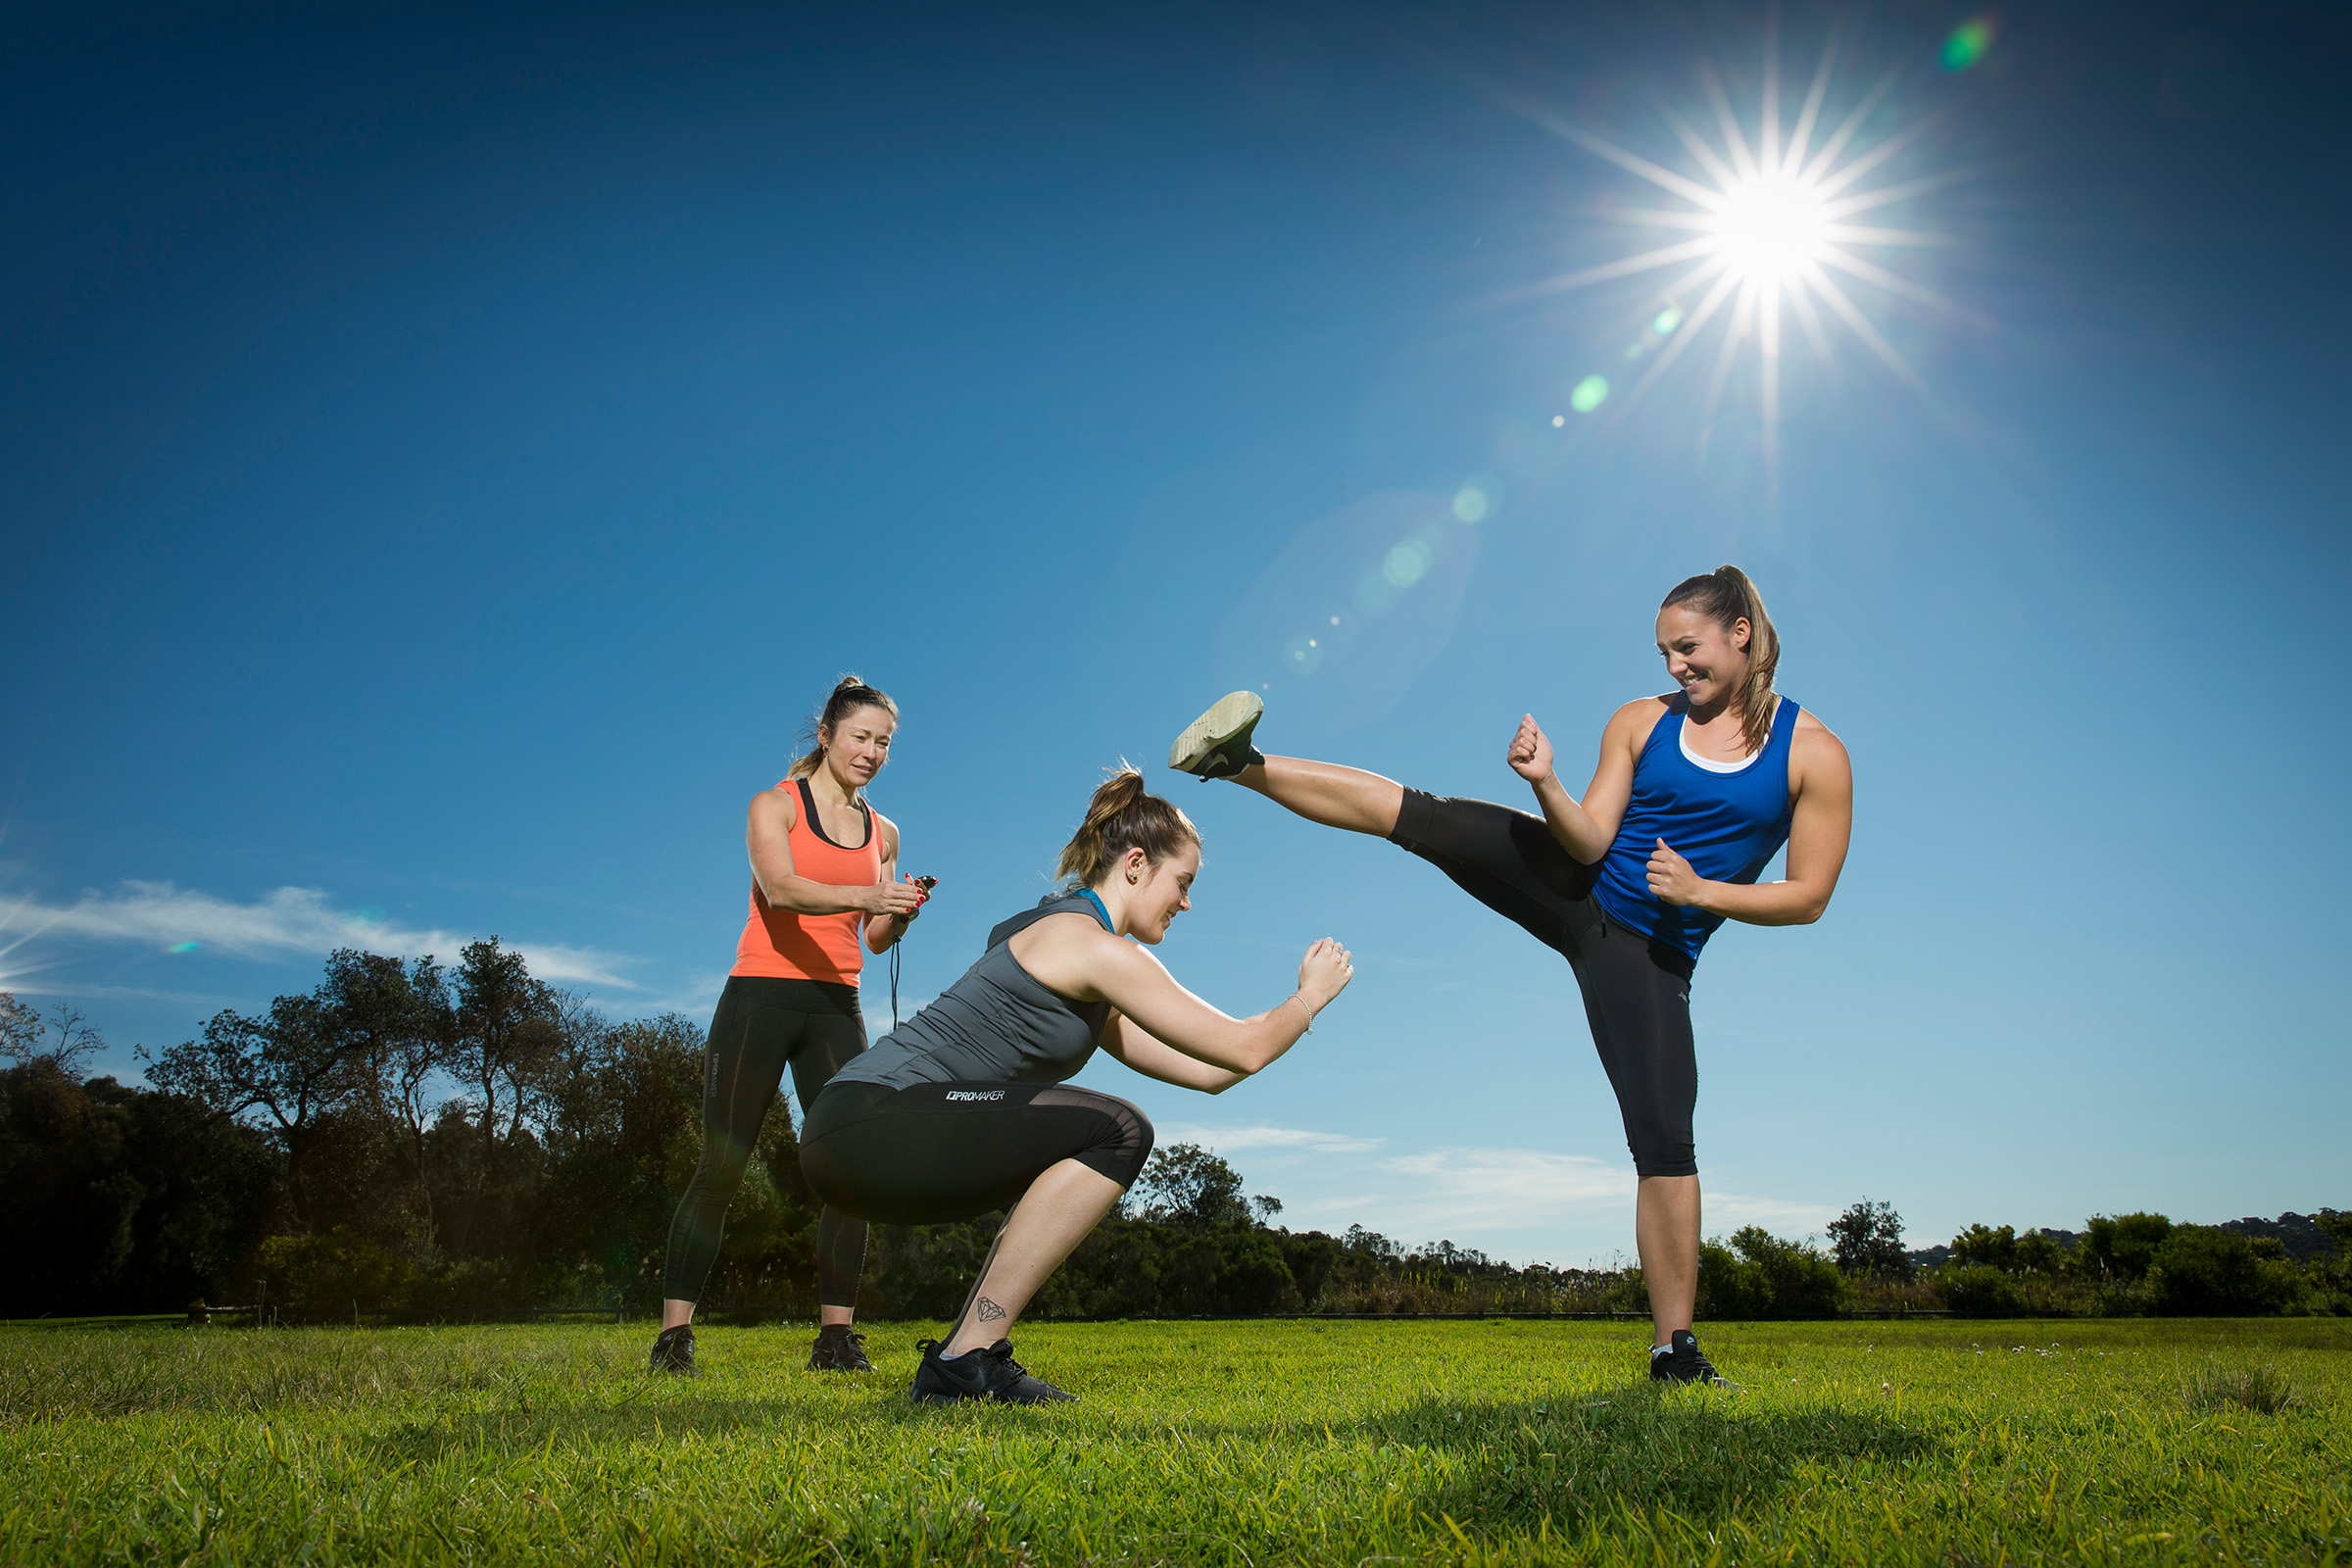 Editorial location fitness photography for Fitness Australia of 3 women group training session at a park